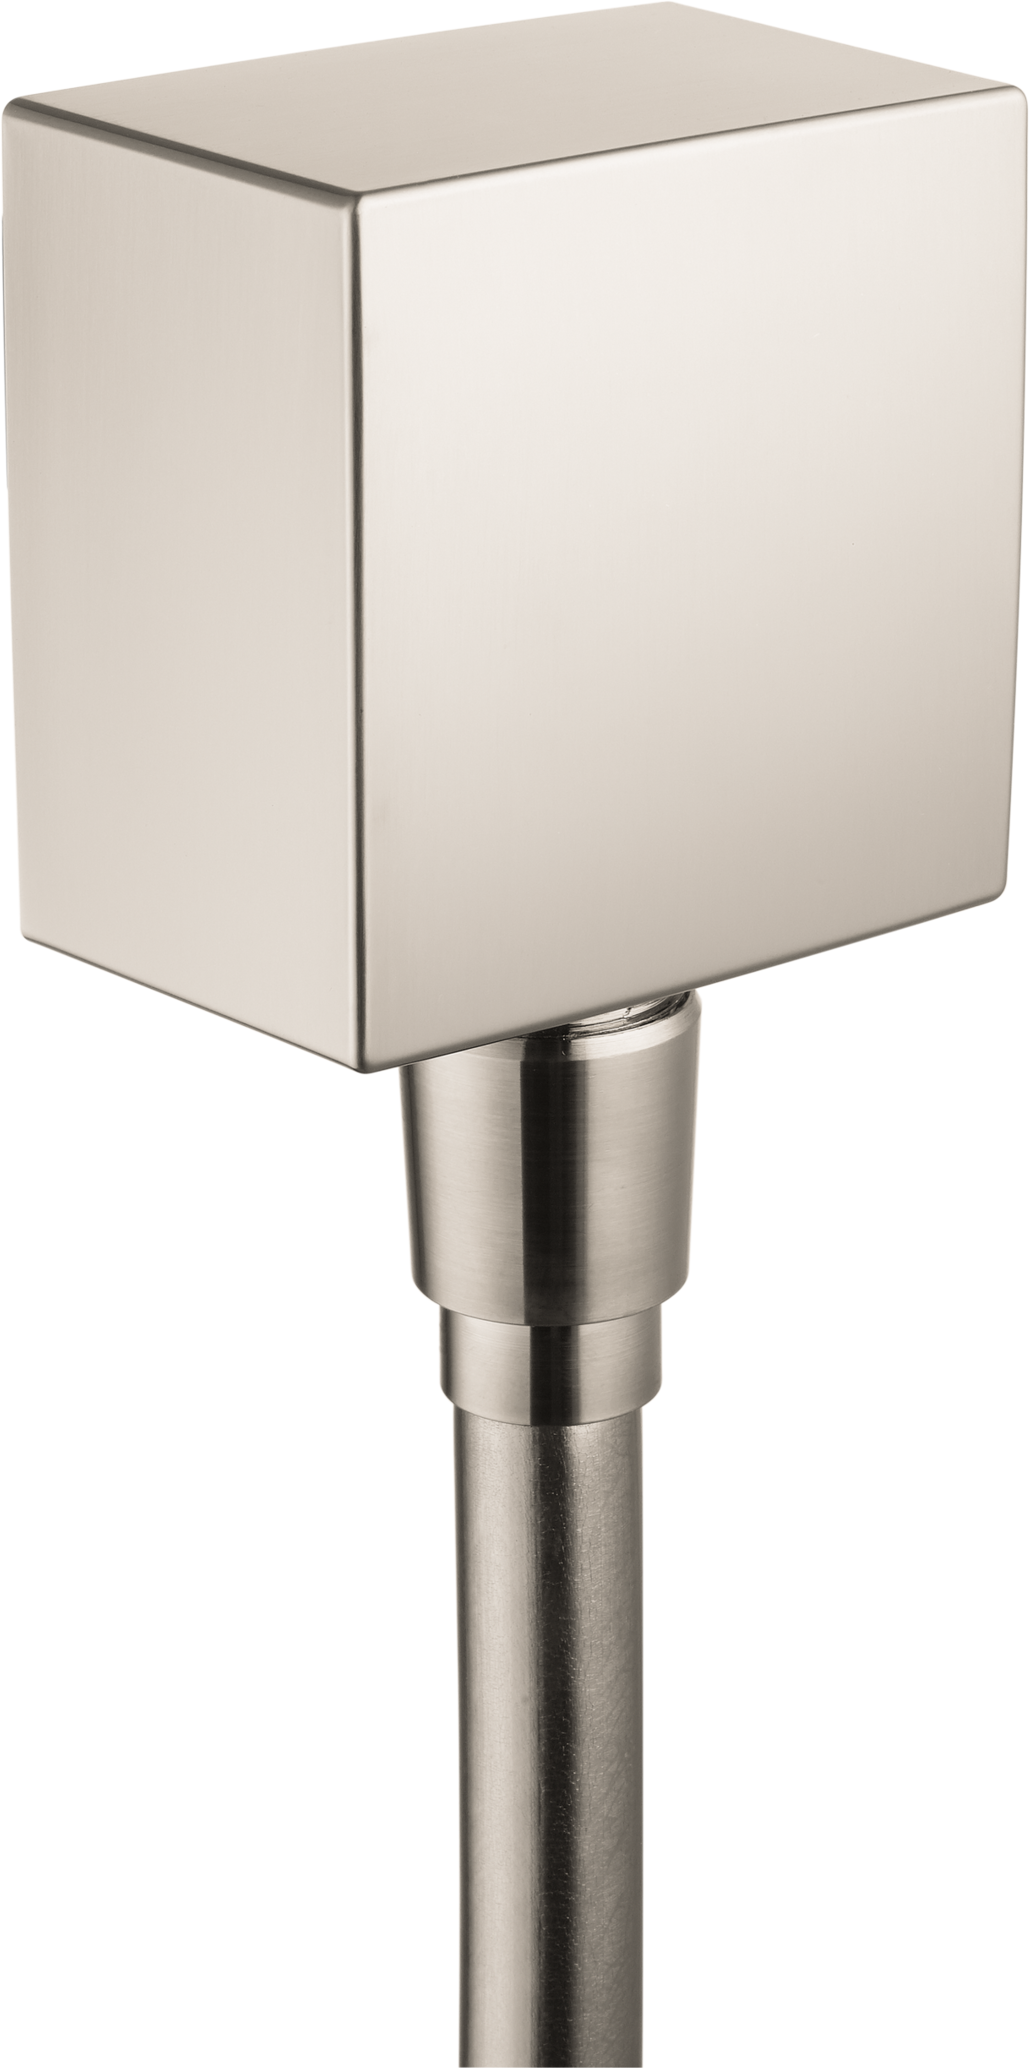 Axor AXOR Square Wall Outlet with Check Valves